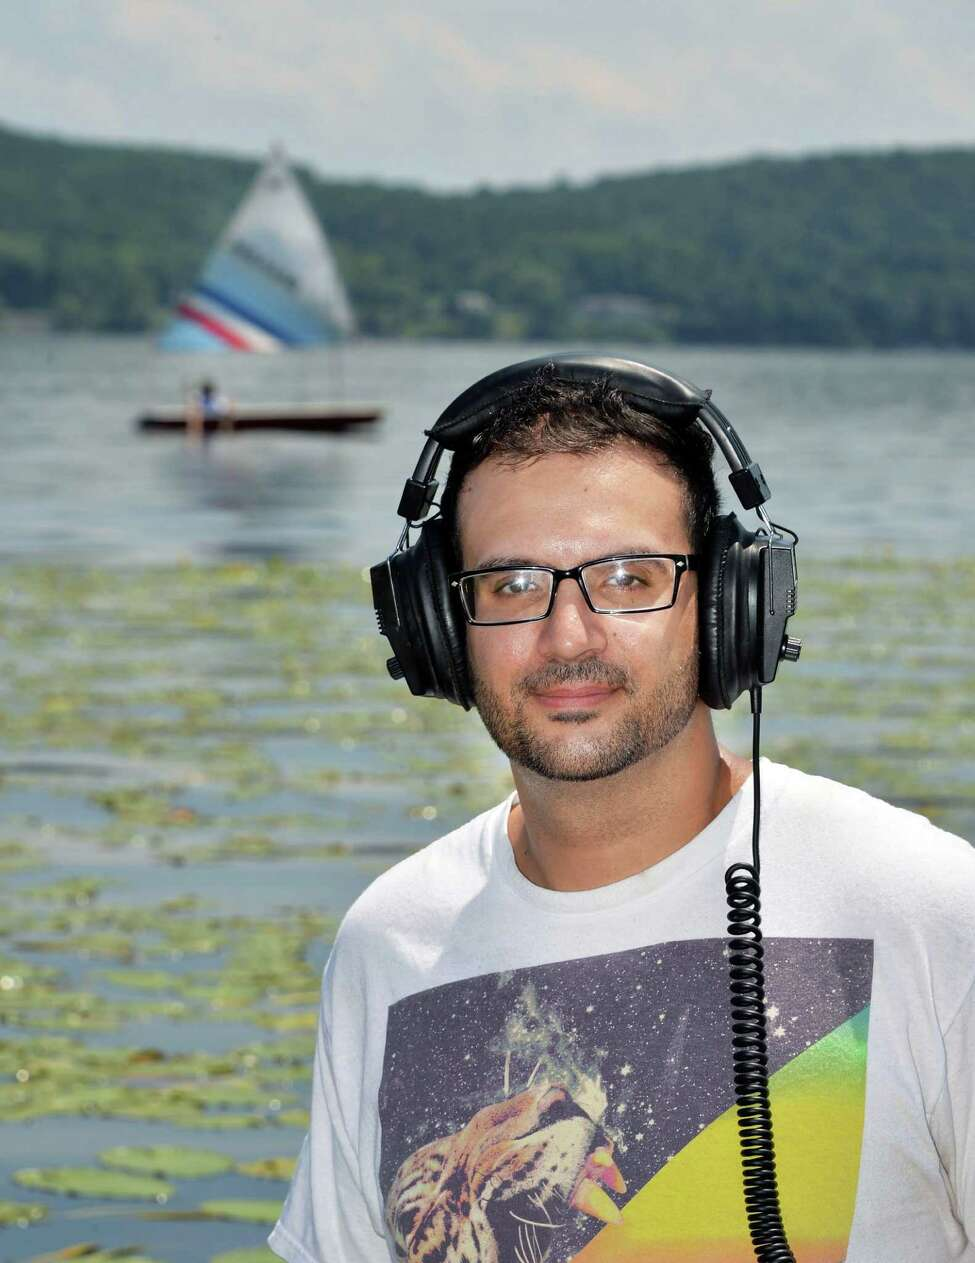 Steve Bell, a metal detector enthusiast who covers Saratoga and Lake George area for ringfinders.com, at Saratoga Lake Thursday, July 3, 2014, in Saratoga Springs, N.Y. (John Carl D'Annibale / Times Union)